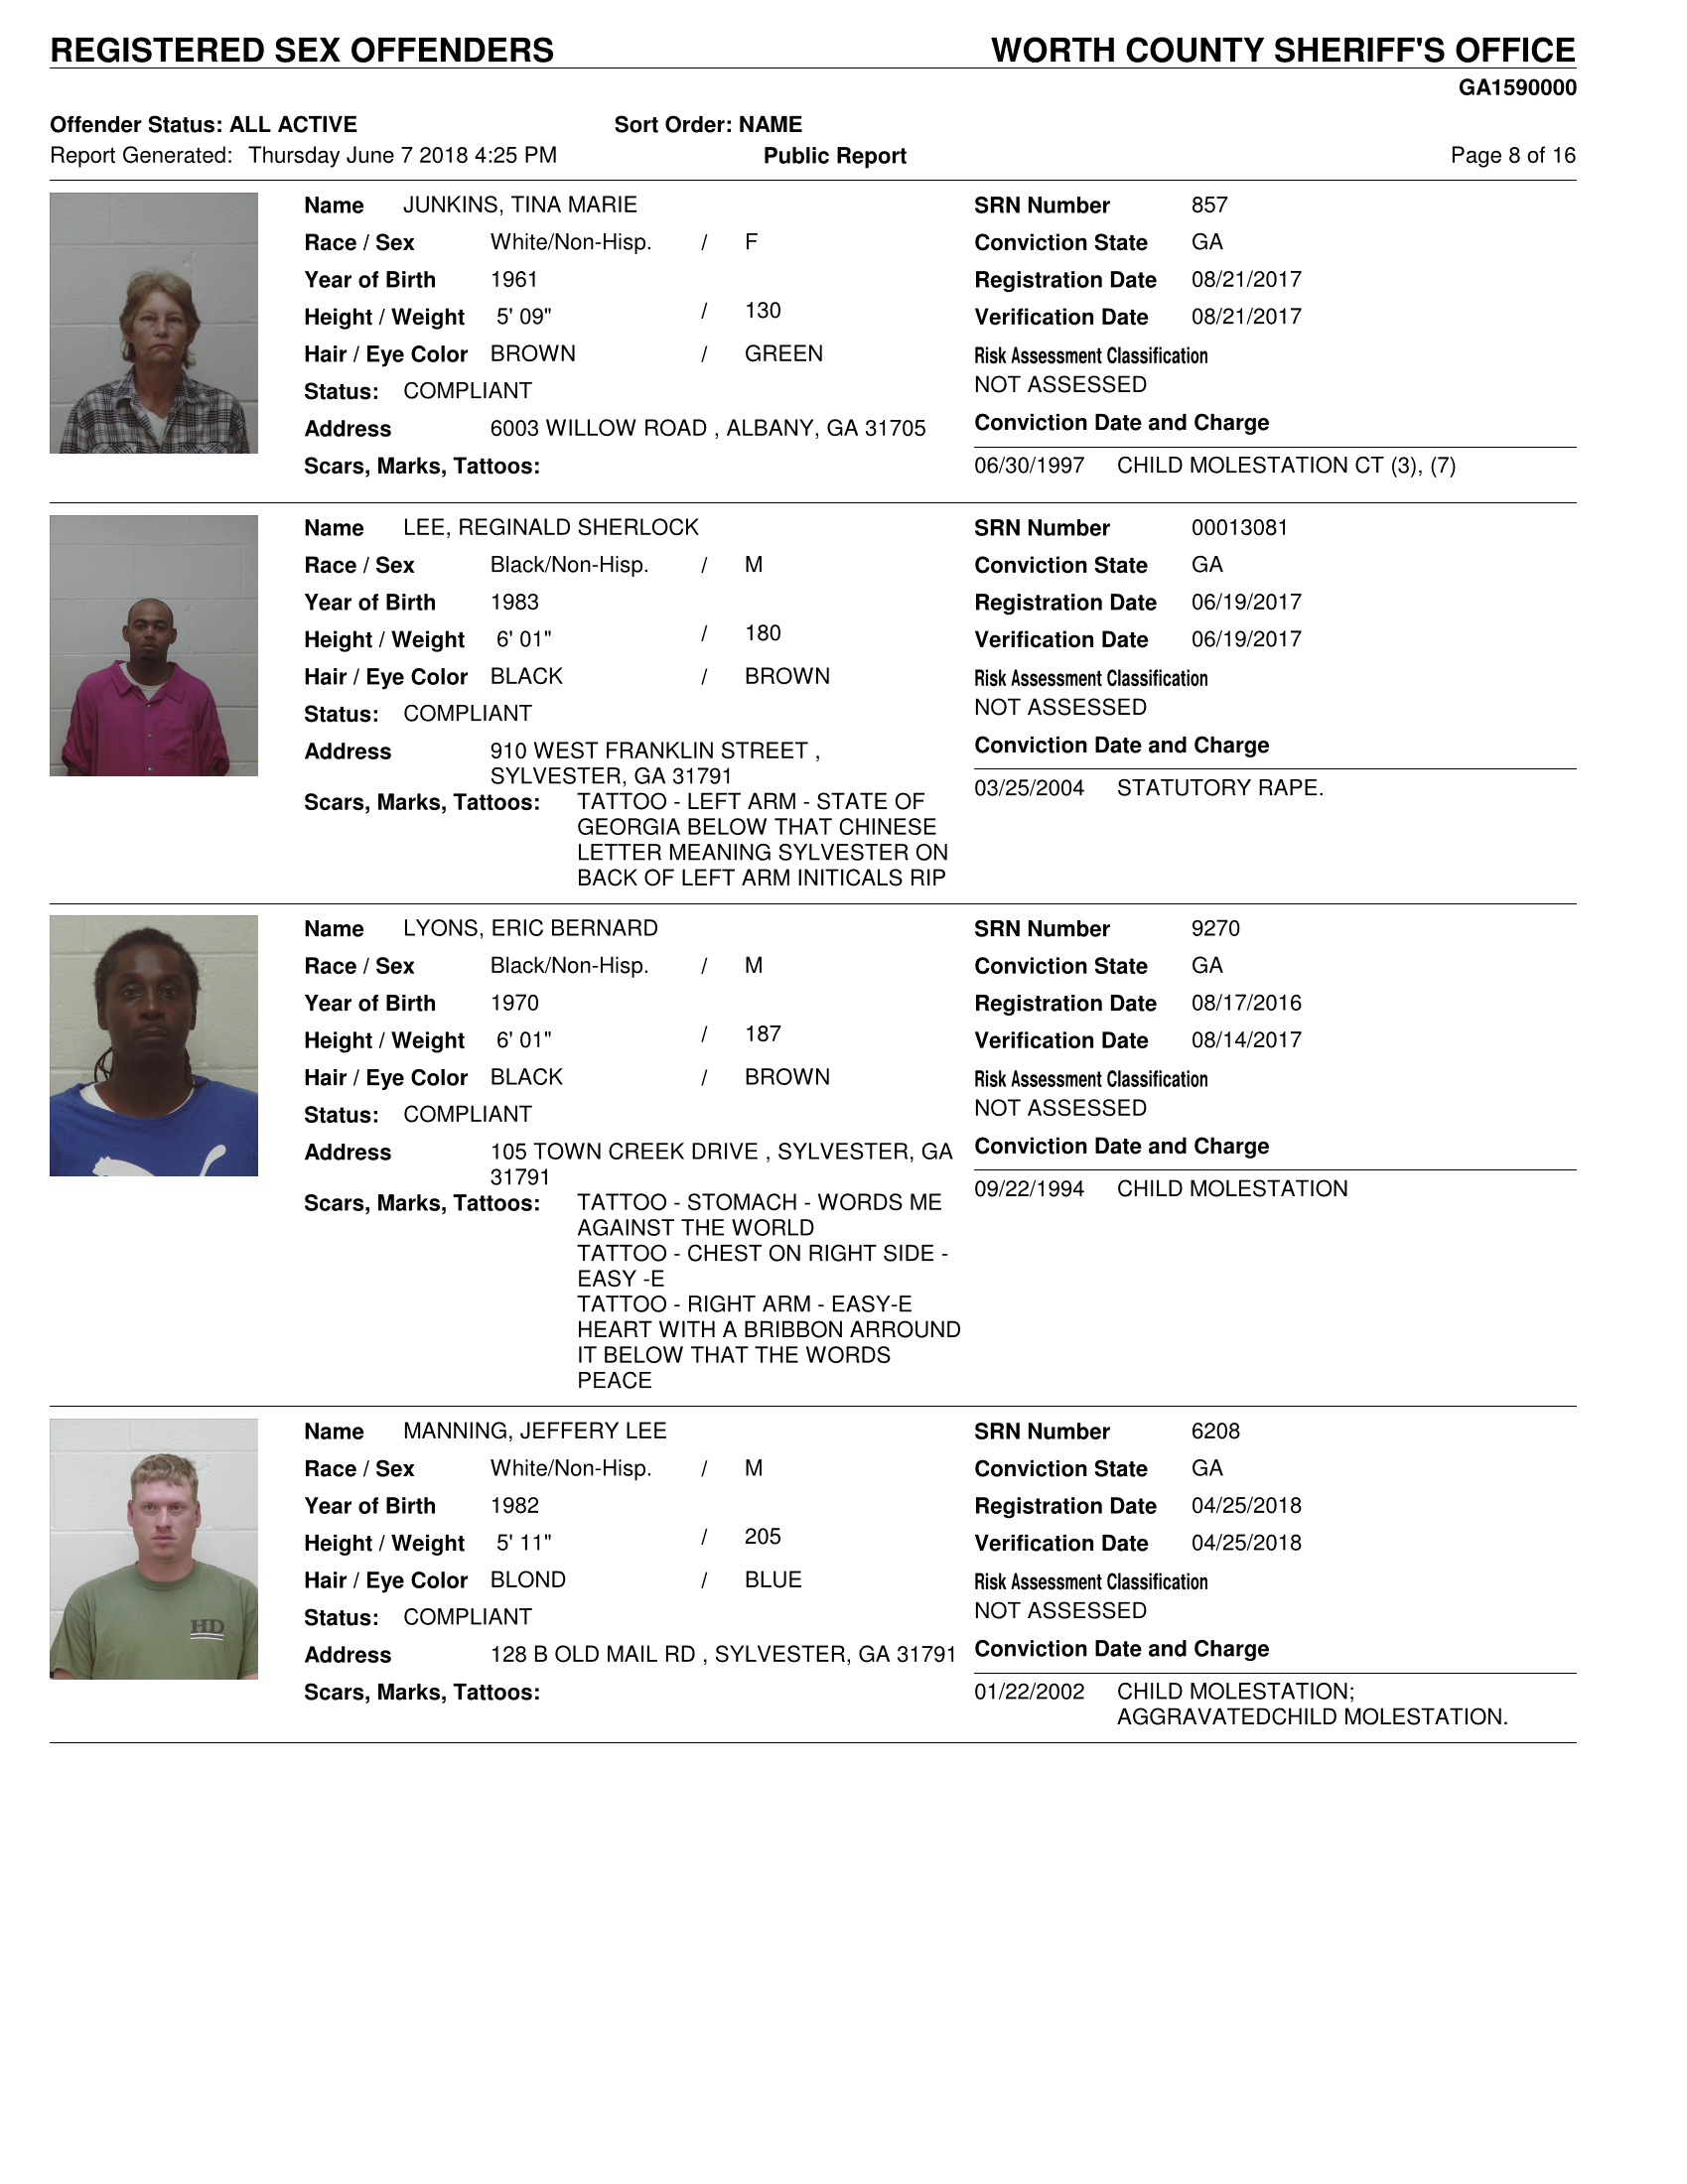 Sex Offenders List. (Click Here to Download the List or Scroll Down)